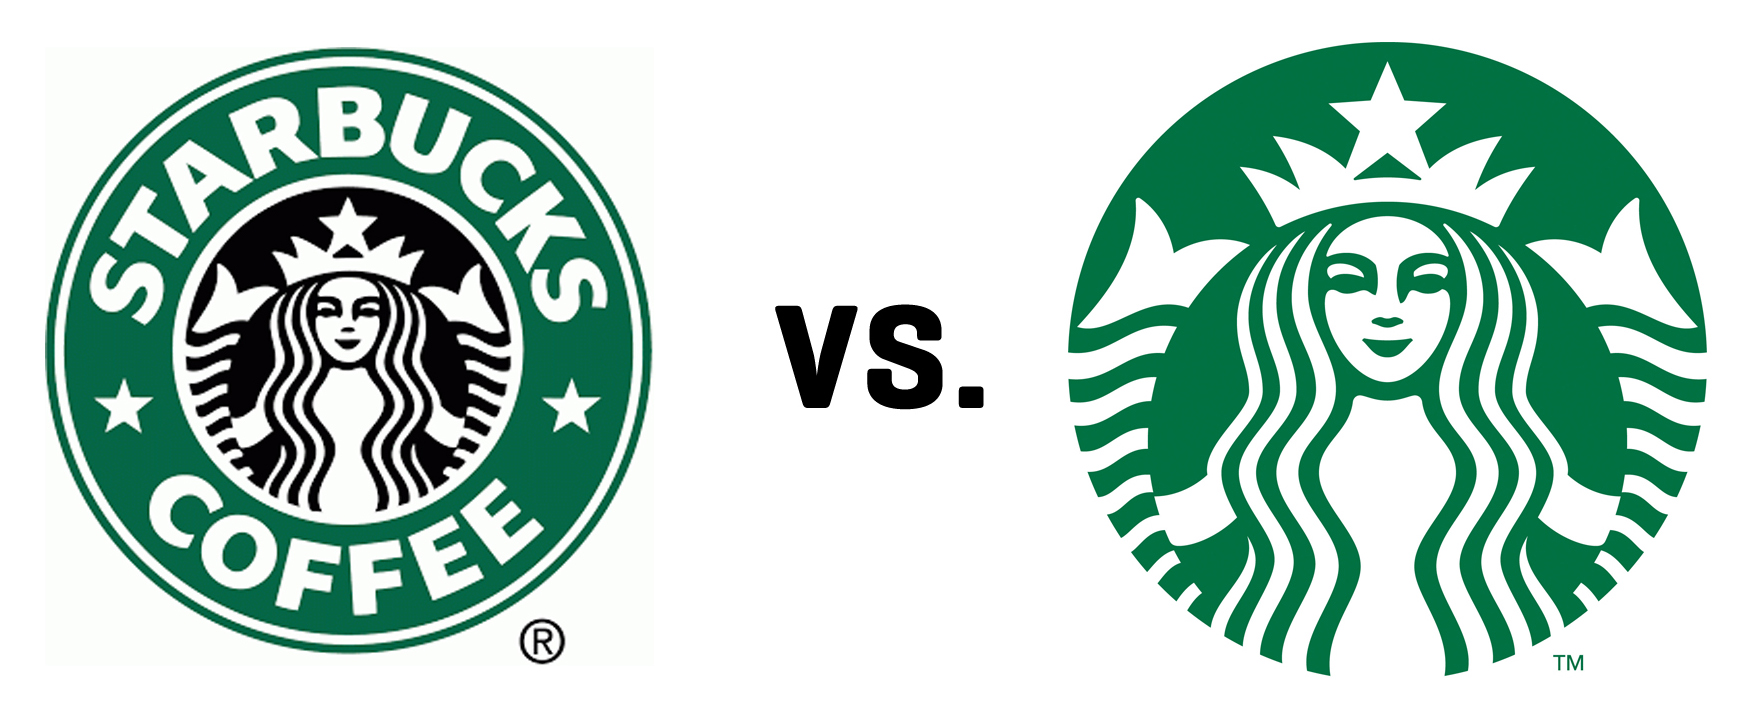 was it a good decision for starbucks to remove their from did you know starbucks removed starbucks coffee from their logo a risky move for a smb but as a large brand they chose to simply focus on their iconic